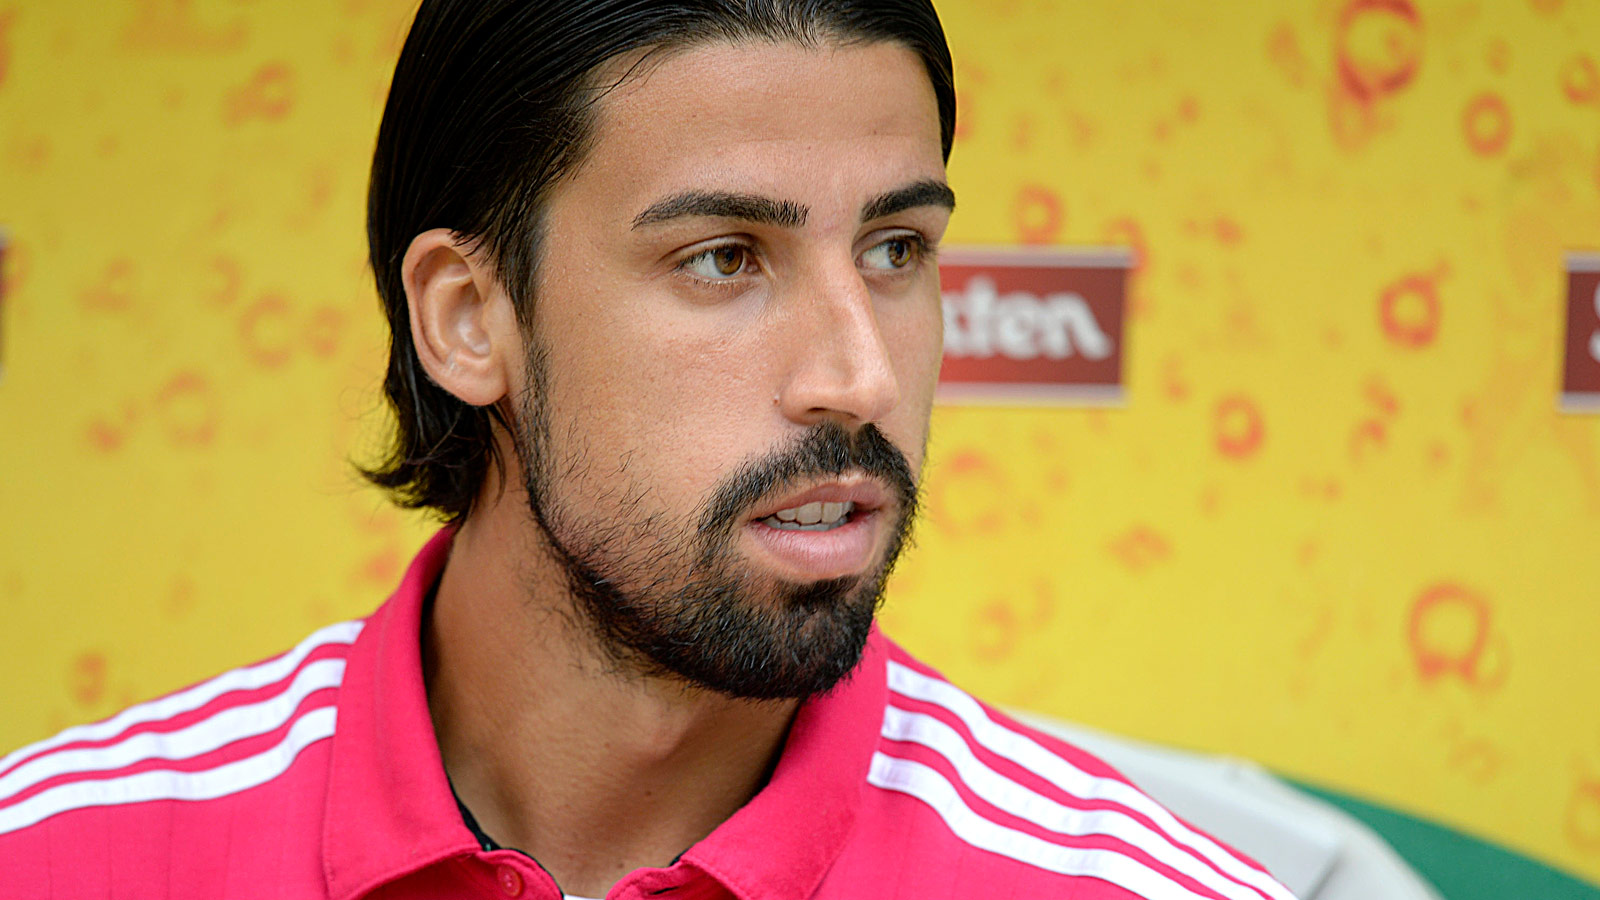 Juventus' Sami Khedira injures hamstring, could miss start of Serie A season